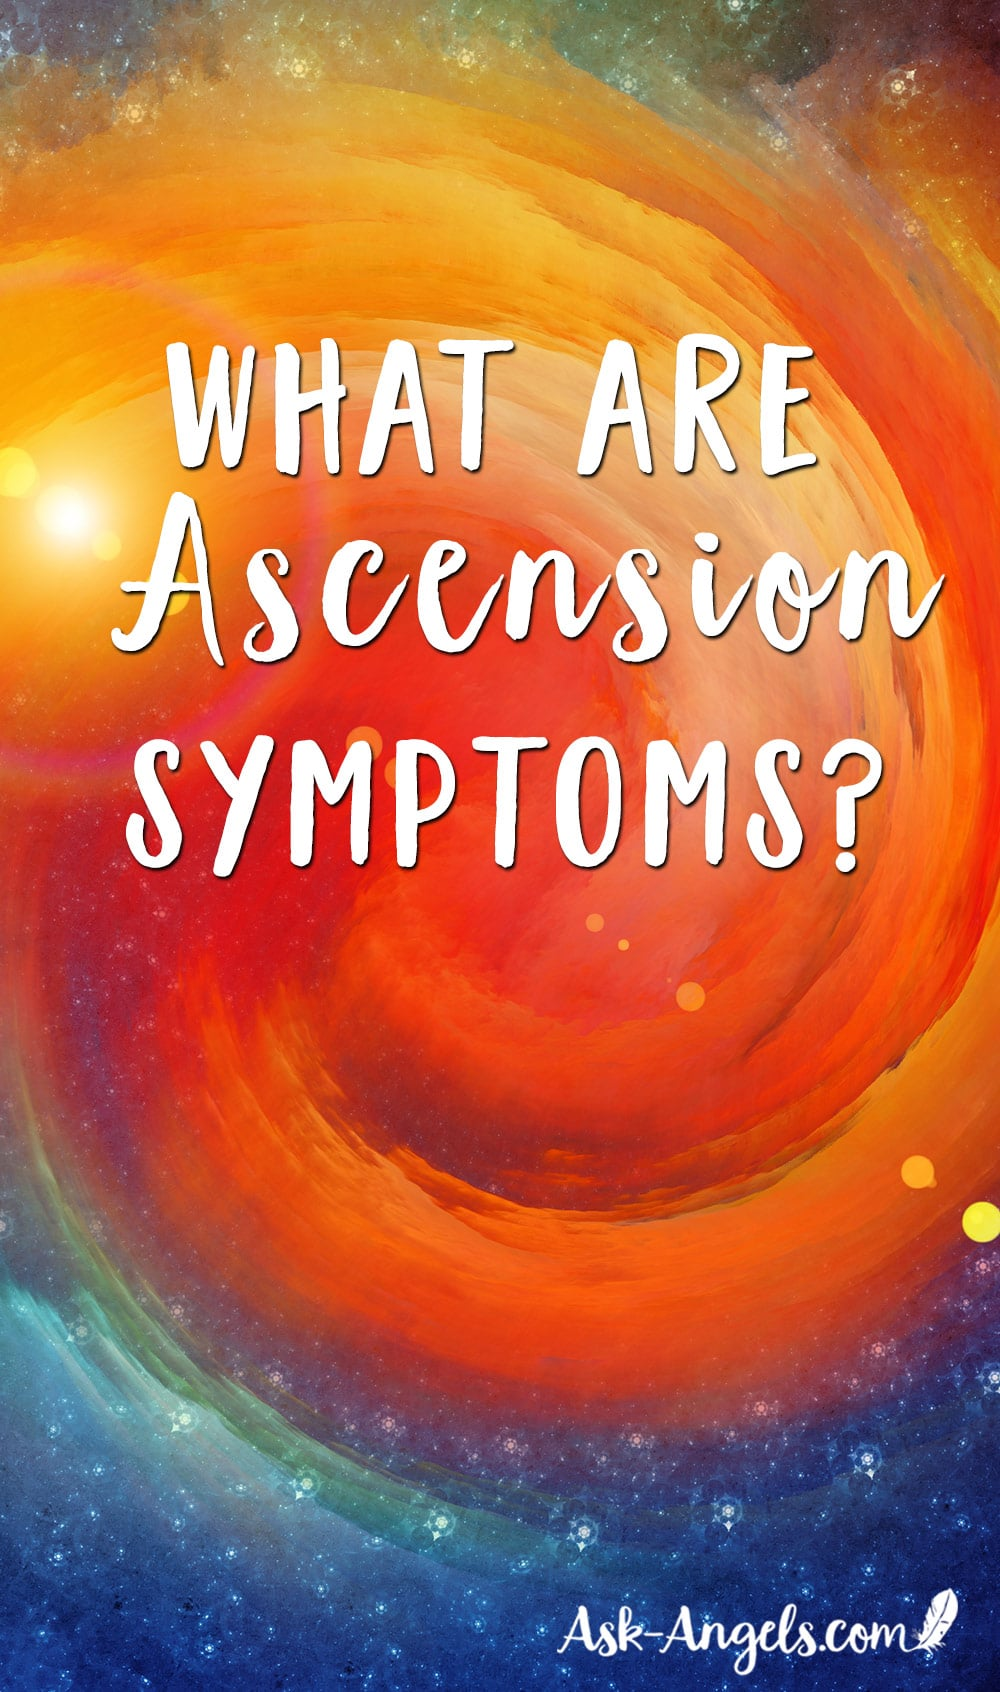 what-are-ascension-symptoms.jpg?profile=RESIZE_400x